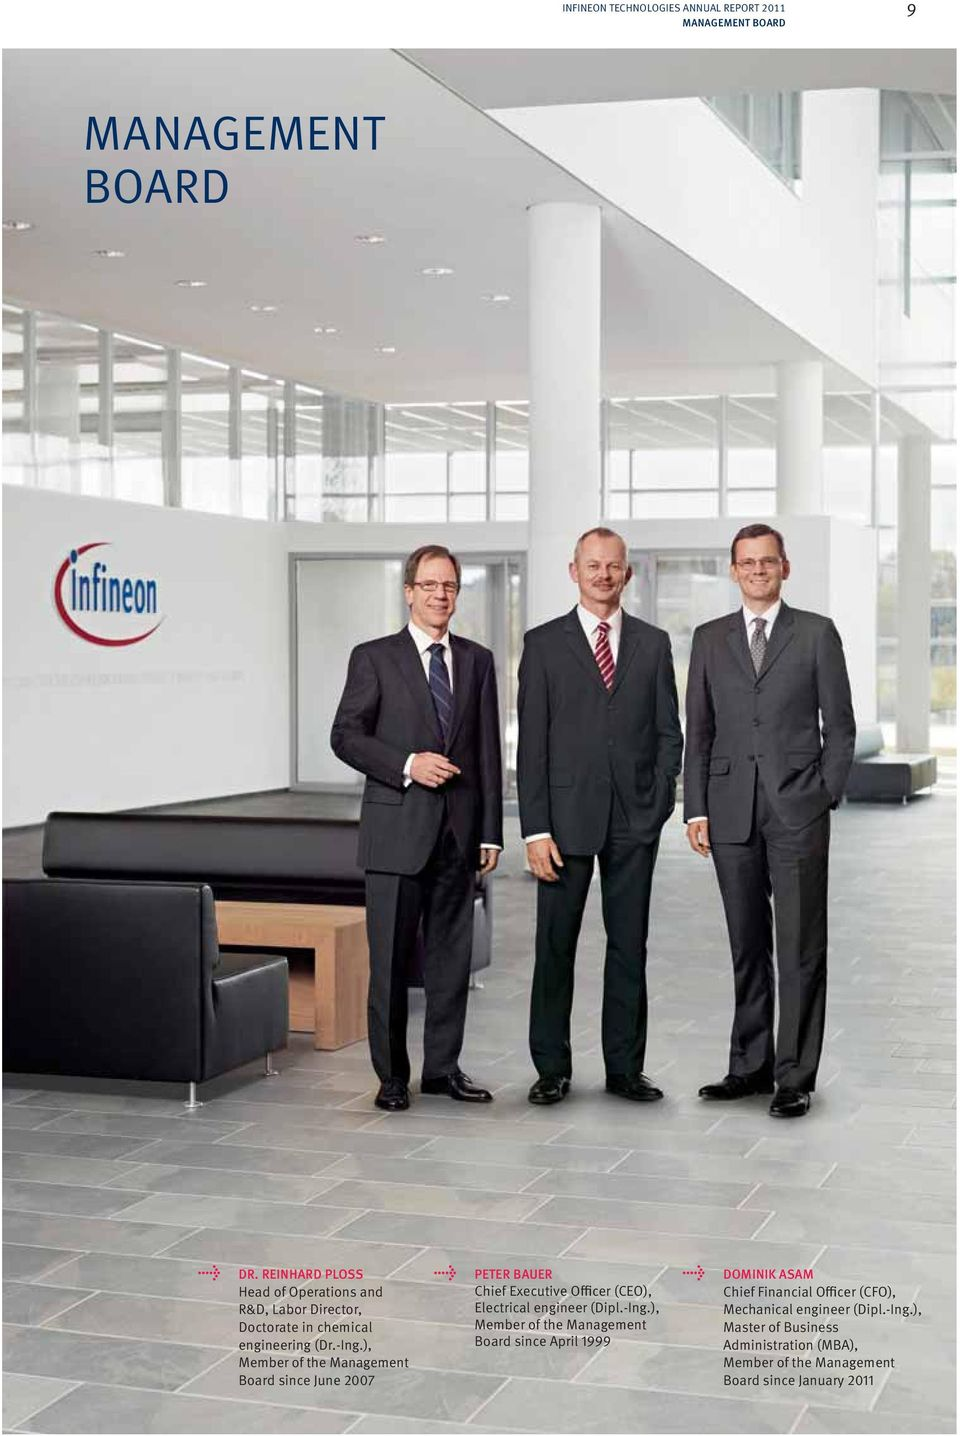 ), Member of the Management Board since June 2007 PETER BAUER Chief Executive Officer (CEO), Electrical engineer (Dipl.-Ing.